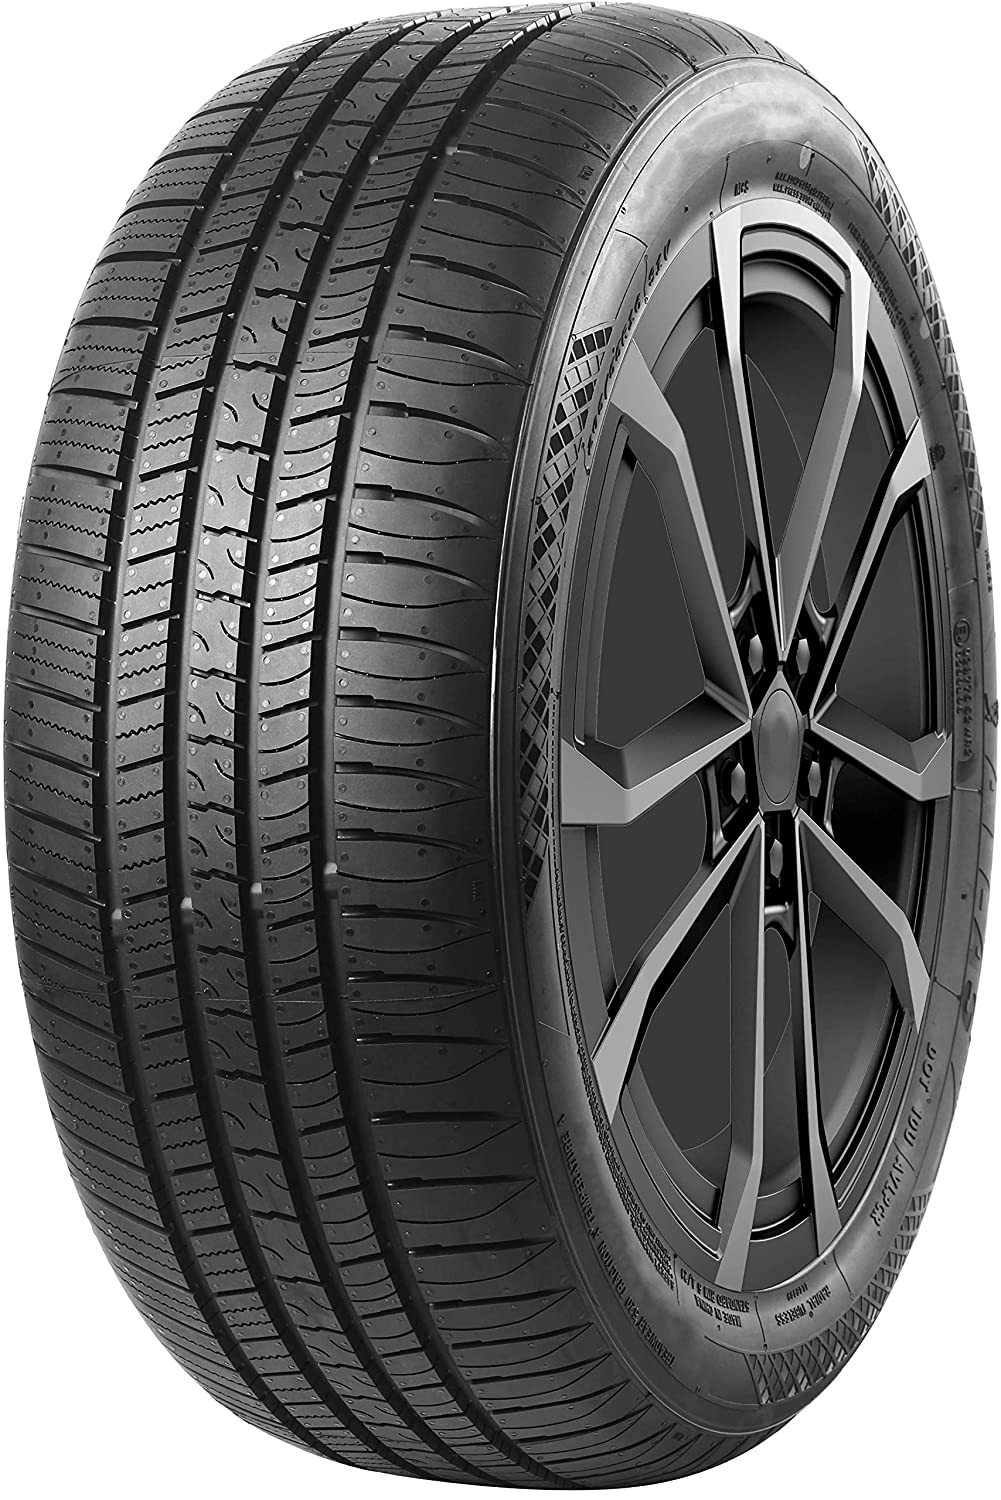 ATLAS Force HP Performance Radial Tire-215/65R16 98H 8859291418429